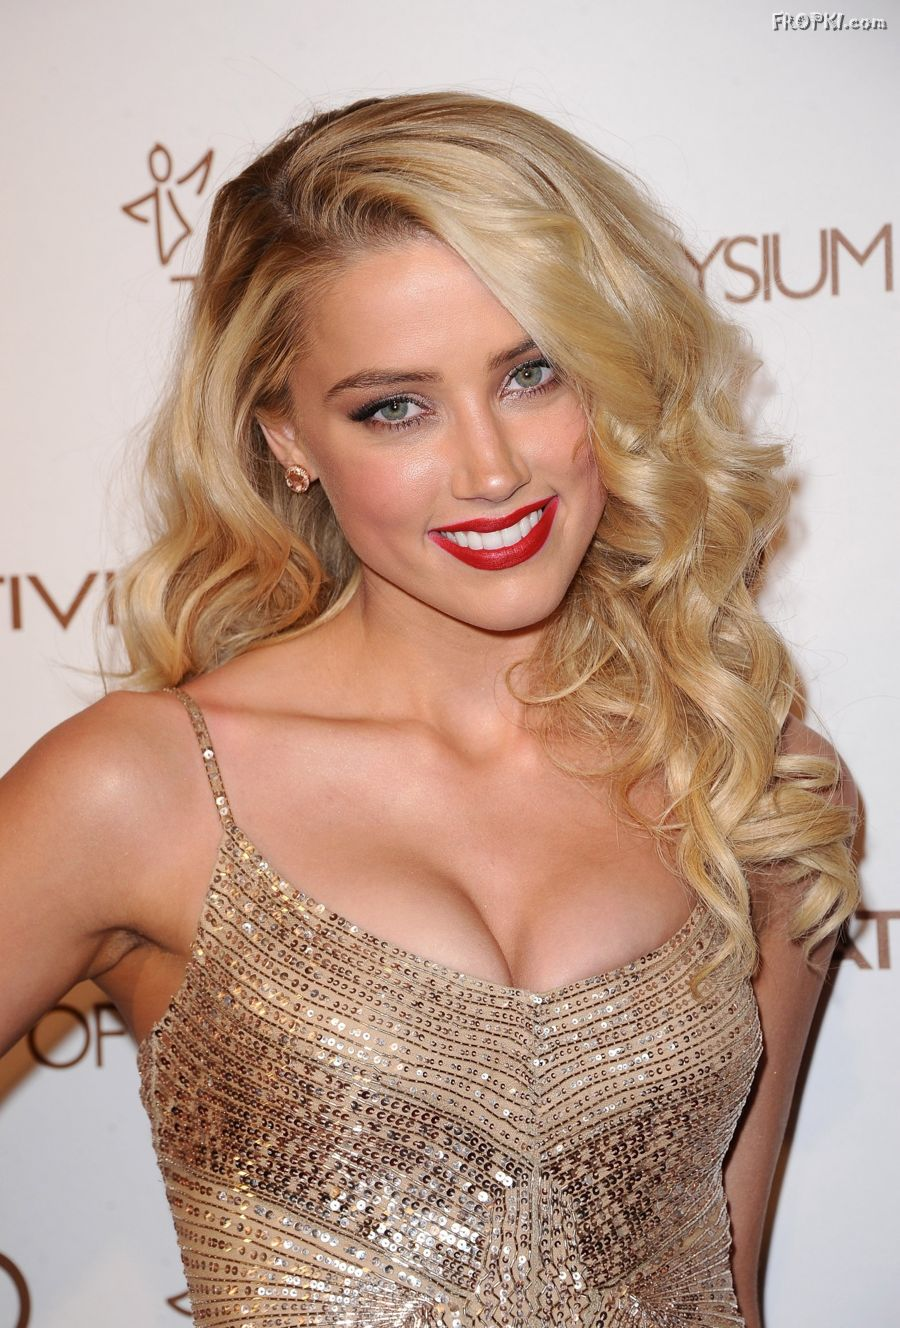 Amber Heard Big Cleavages Photos ~ My 24News and Entertainment